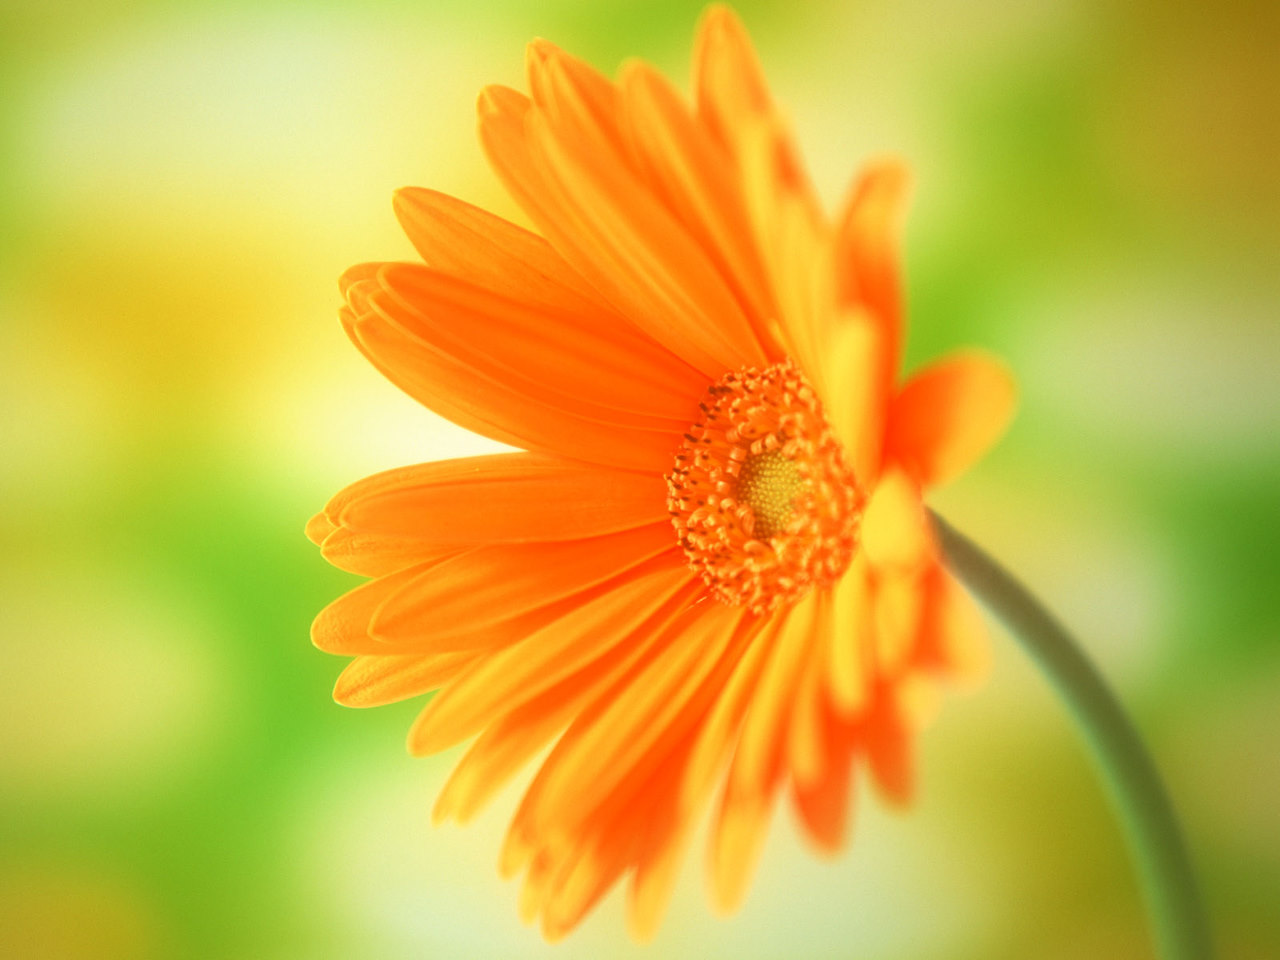 latest wallpapers: flowers wallpapers, flowers animated wallpaper